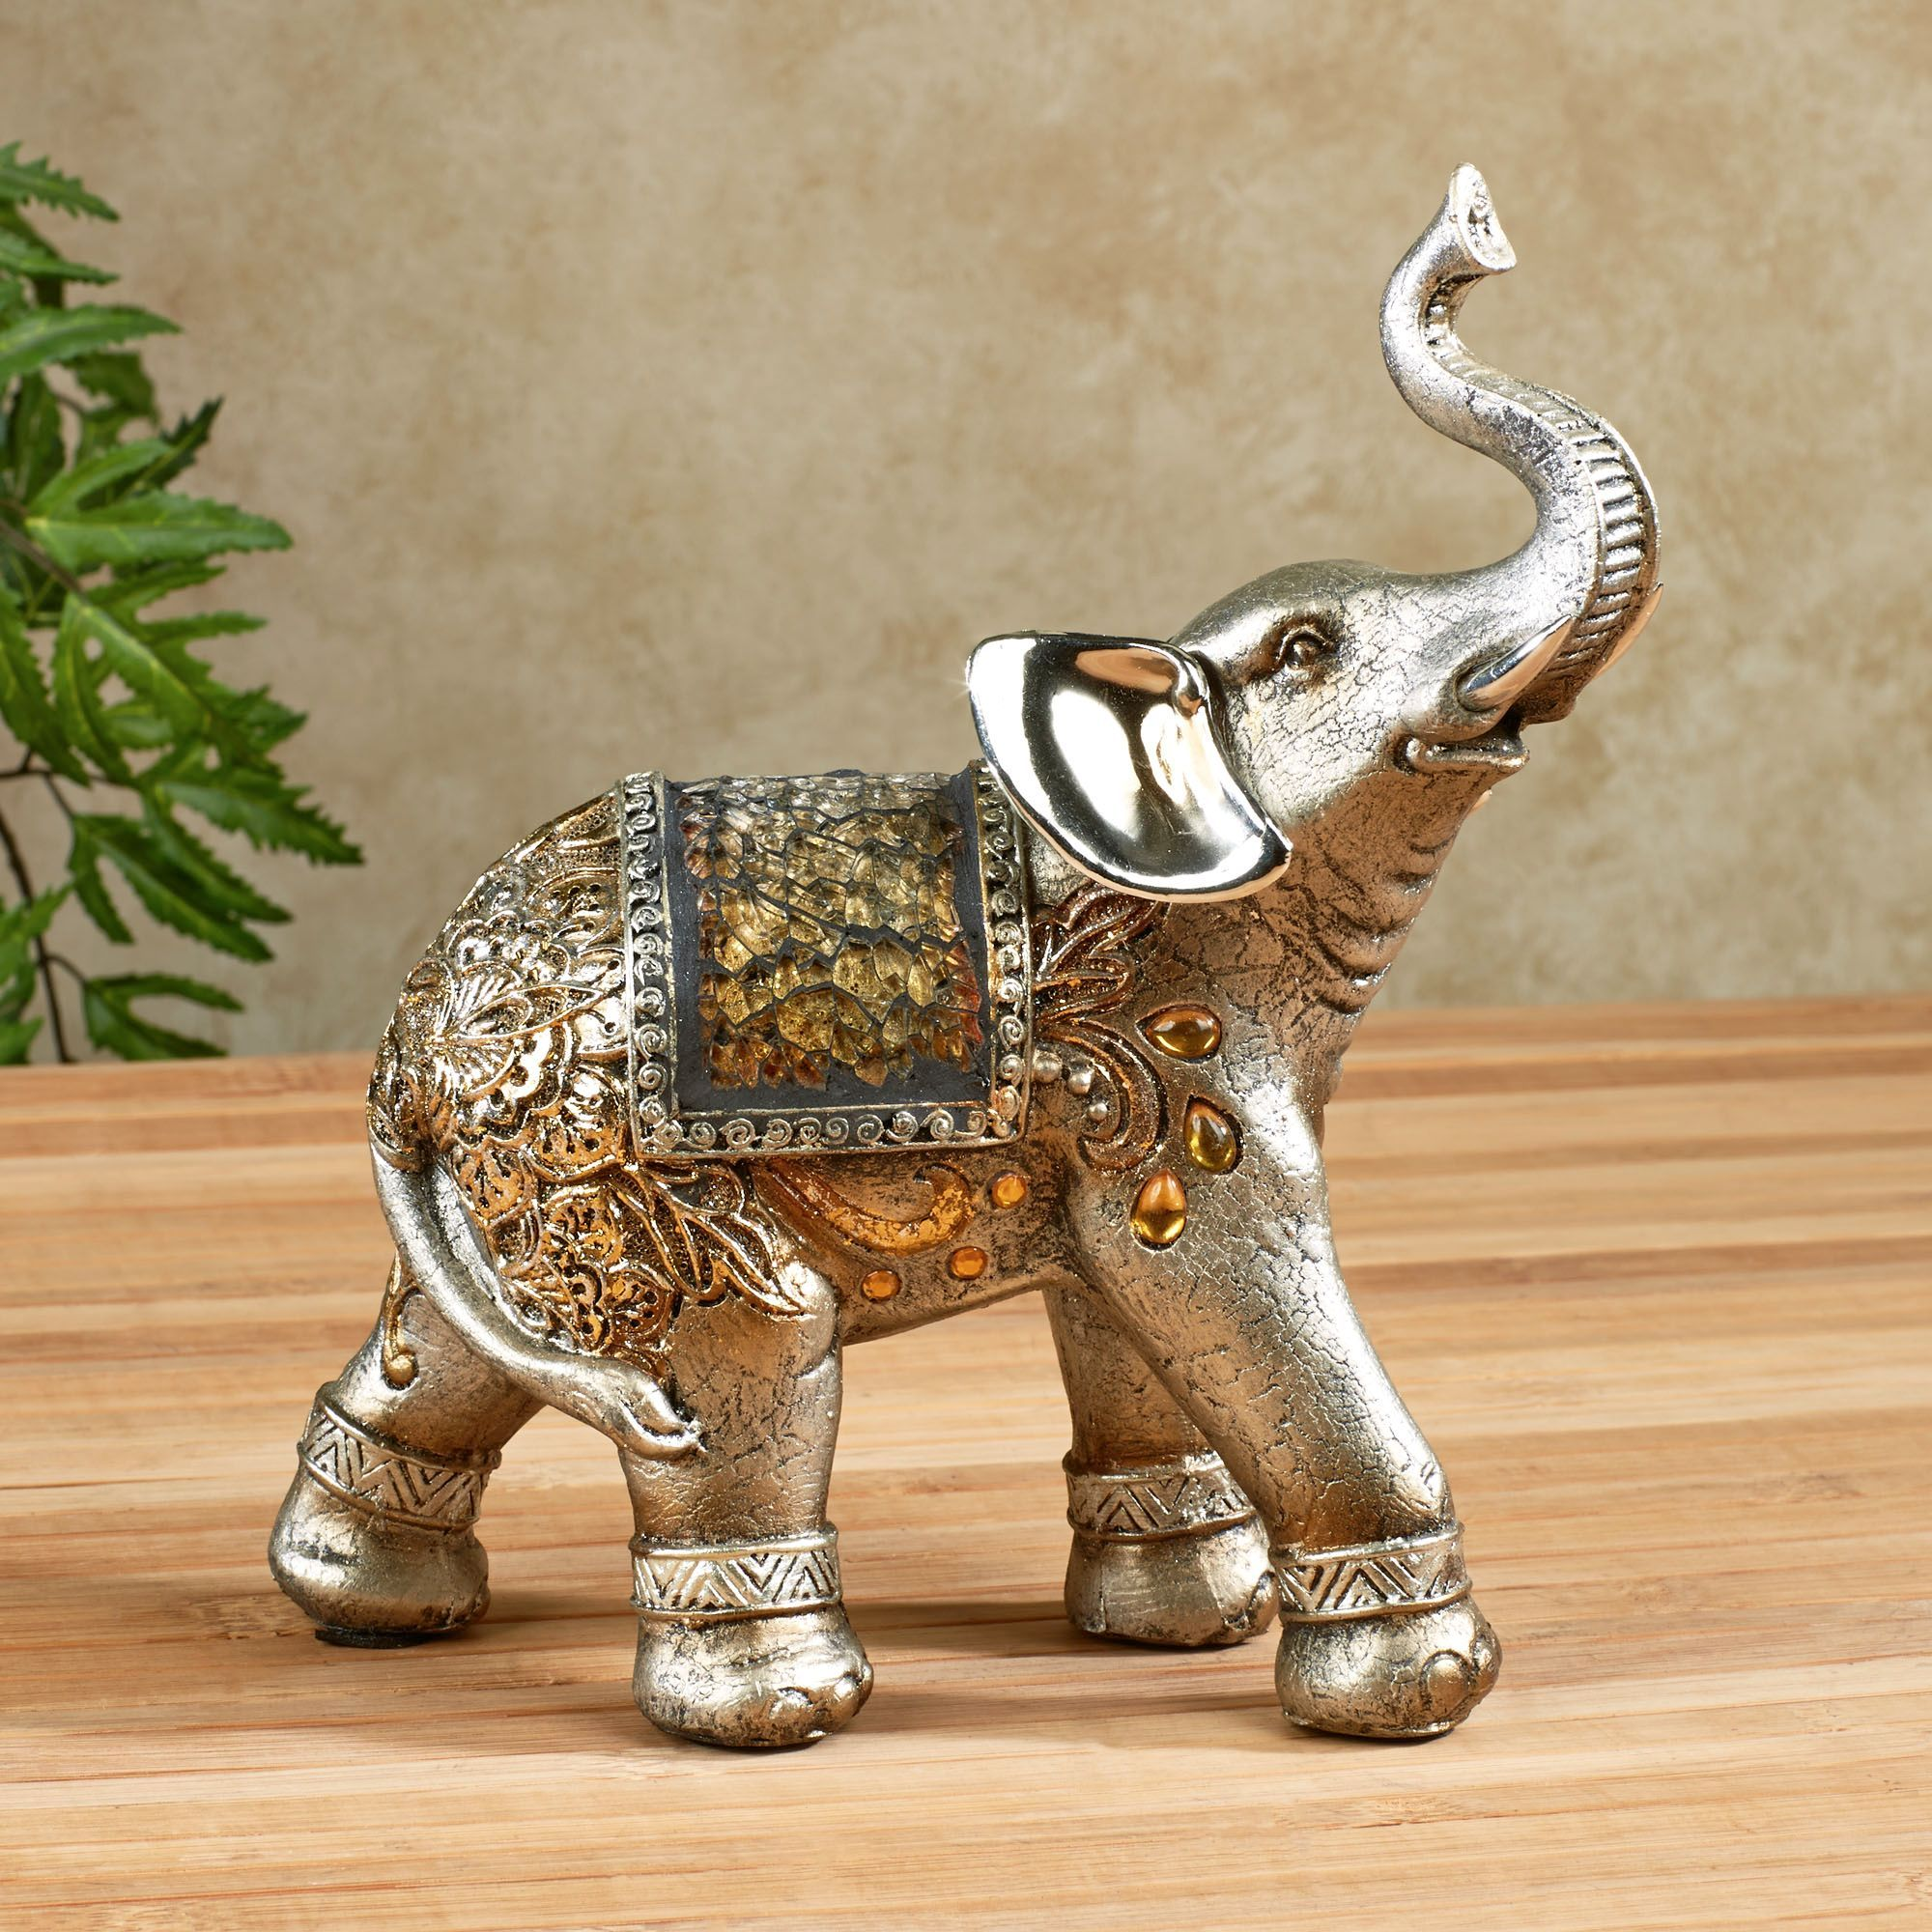 Elephant Home Decor: Bejeweled Mosaic Elephant Figurines For Home Decoration